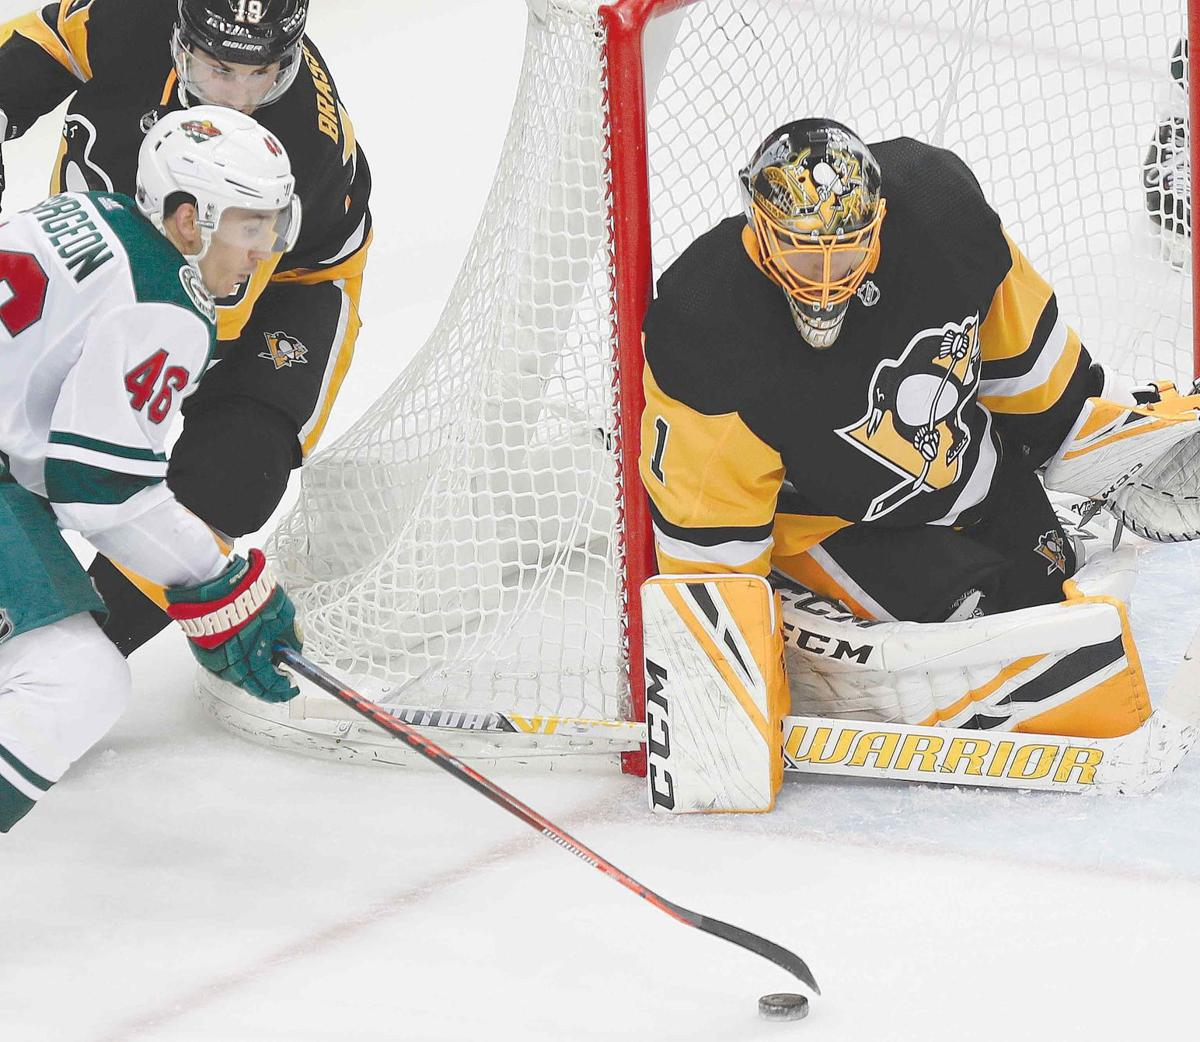 Rust stays hot against Wild